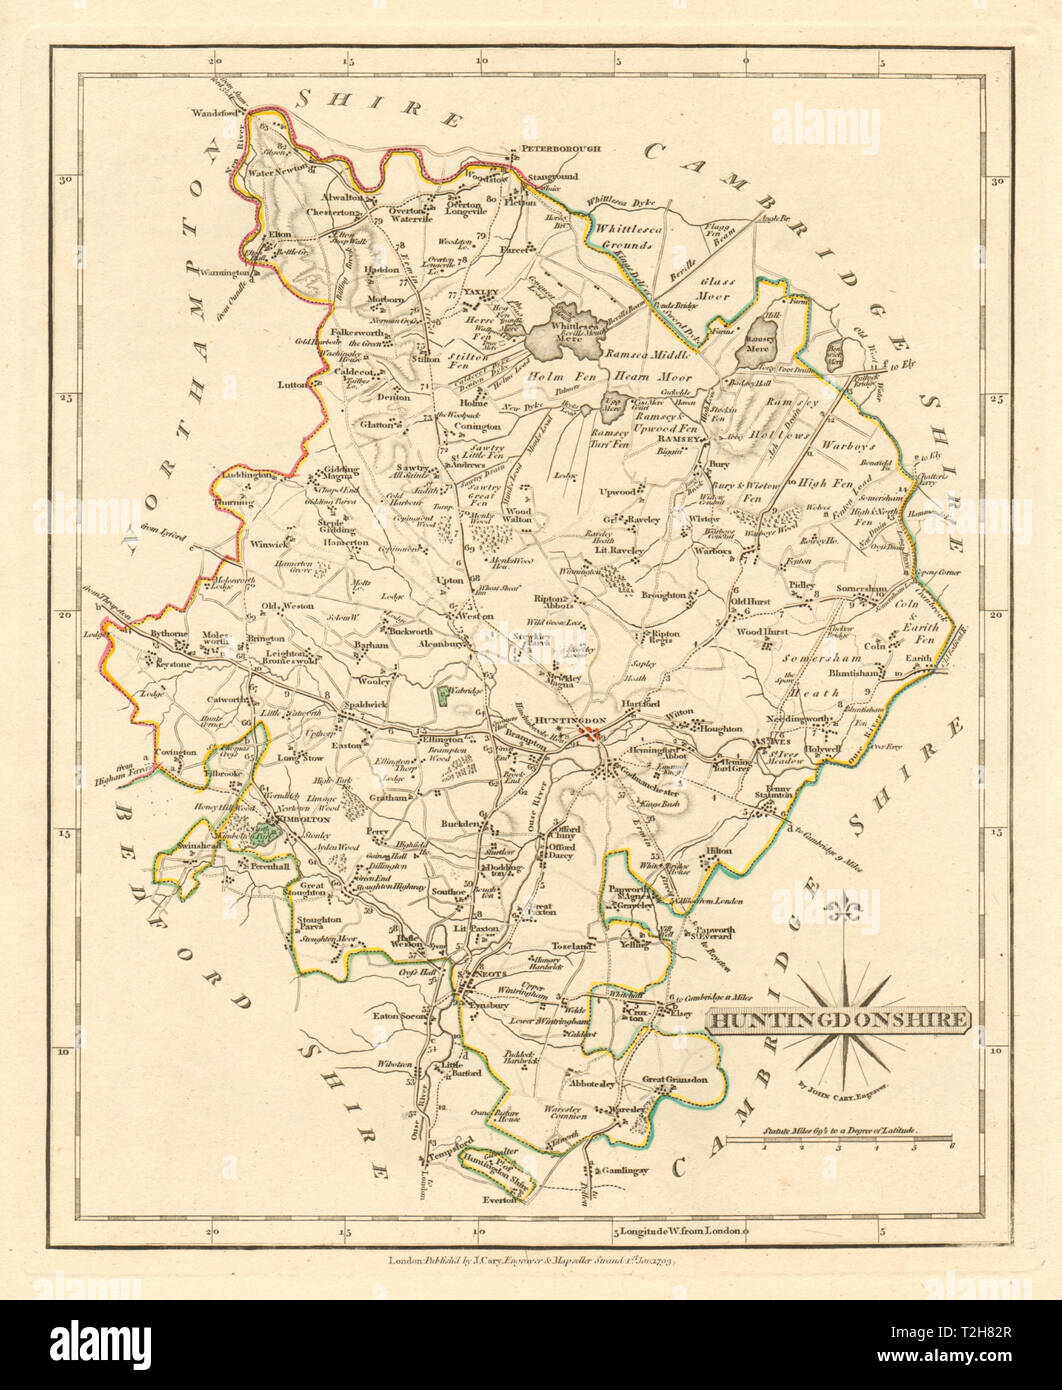 Kimbolton St Neots 1793 Art Prints Helpful Antique County Map Of Huntingdonshire By John Cary